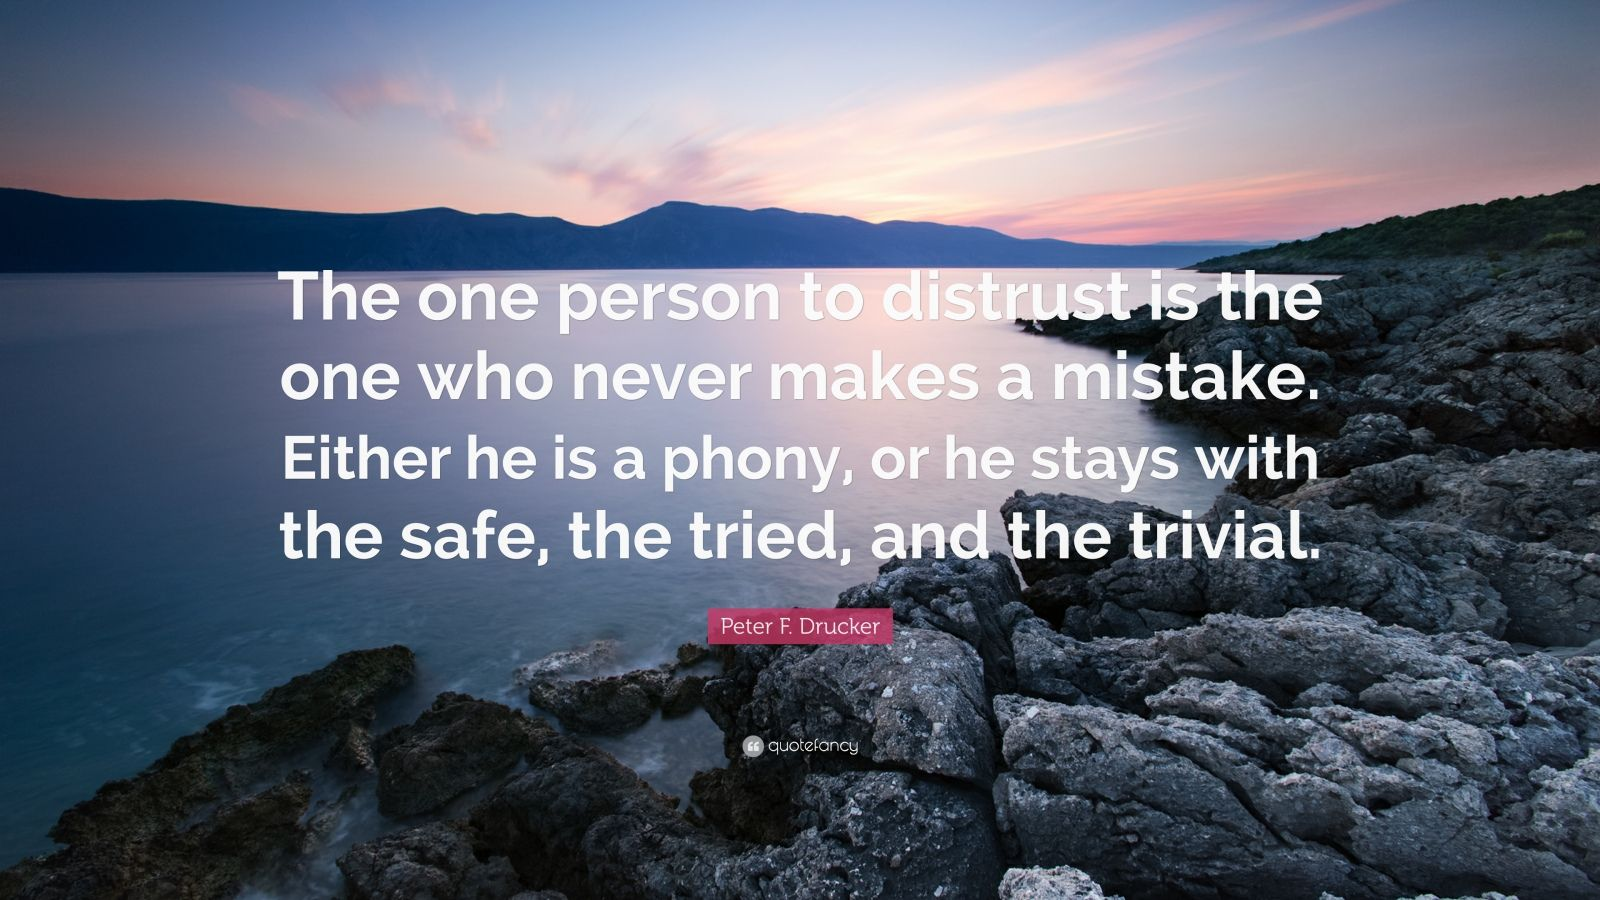 "Peter F. Drucker Quote: ""The one person to distrust is the one who never makes a mistake. Either he is a phony, or he stays with the safe, the tried, and the trivial."""